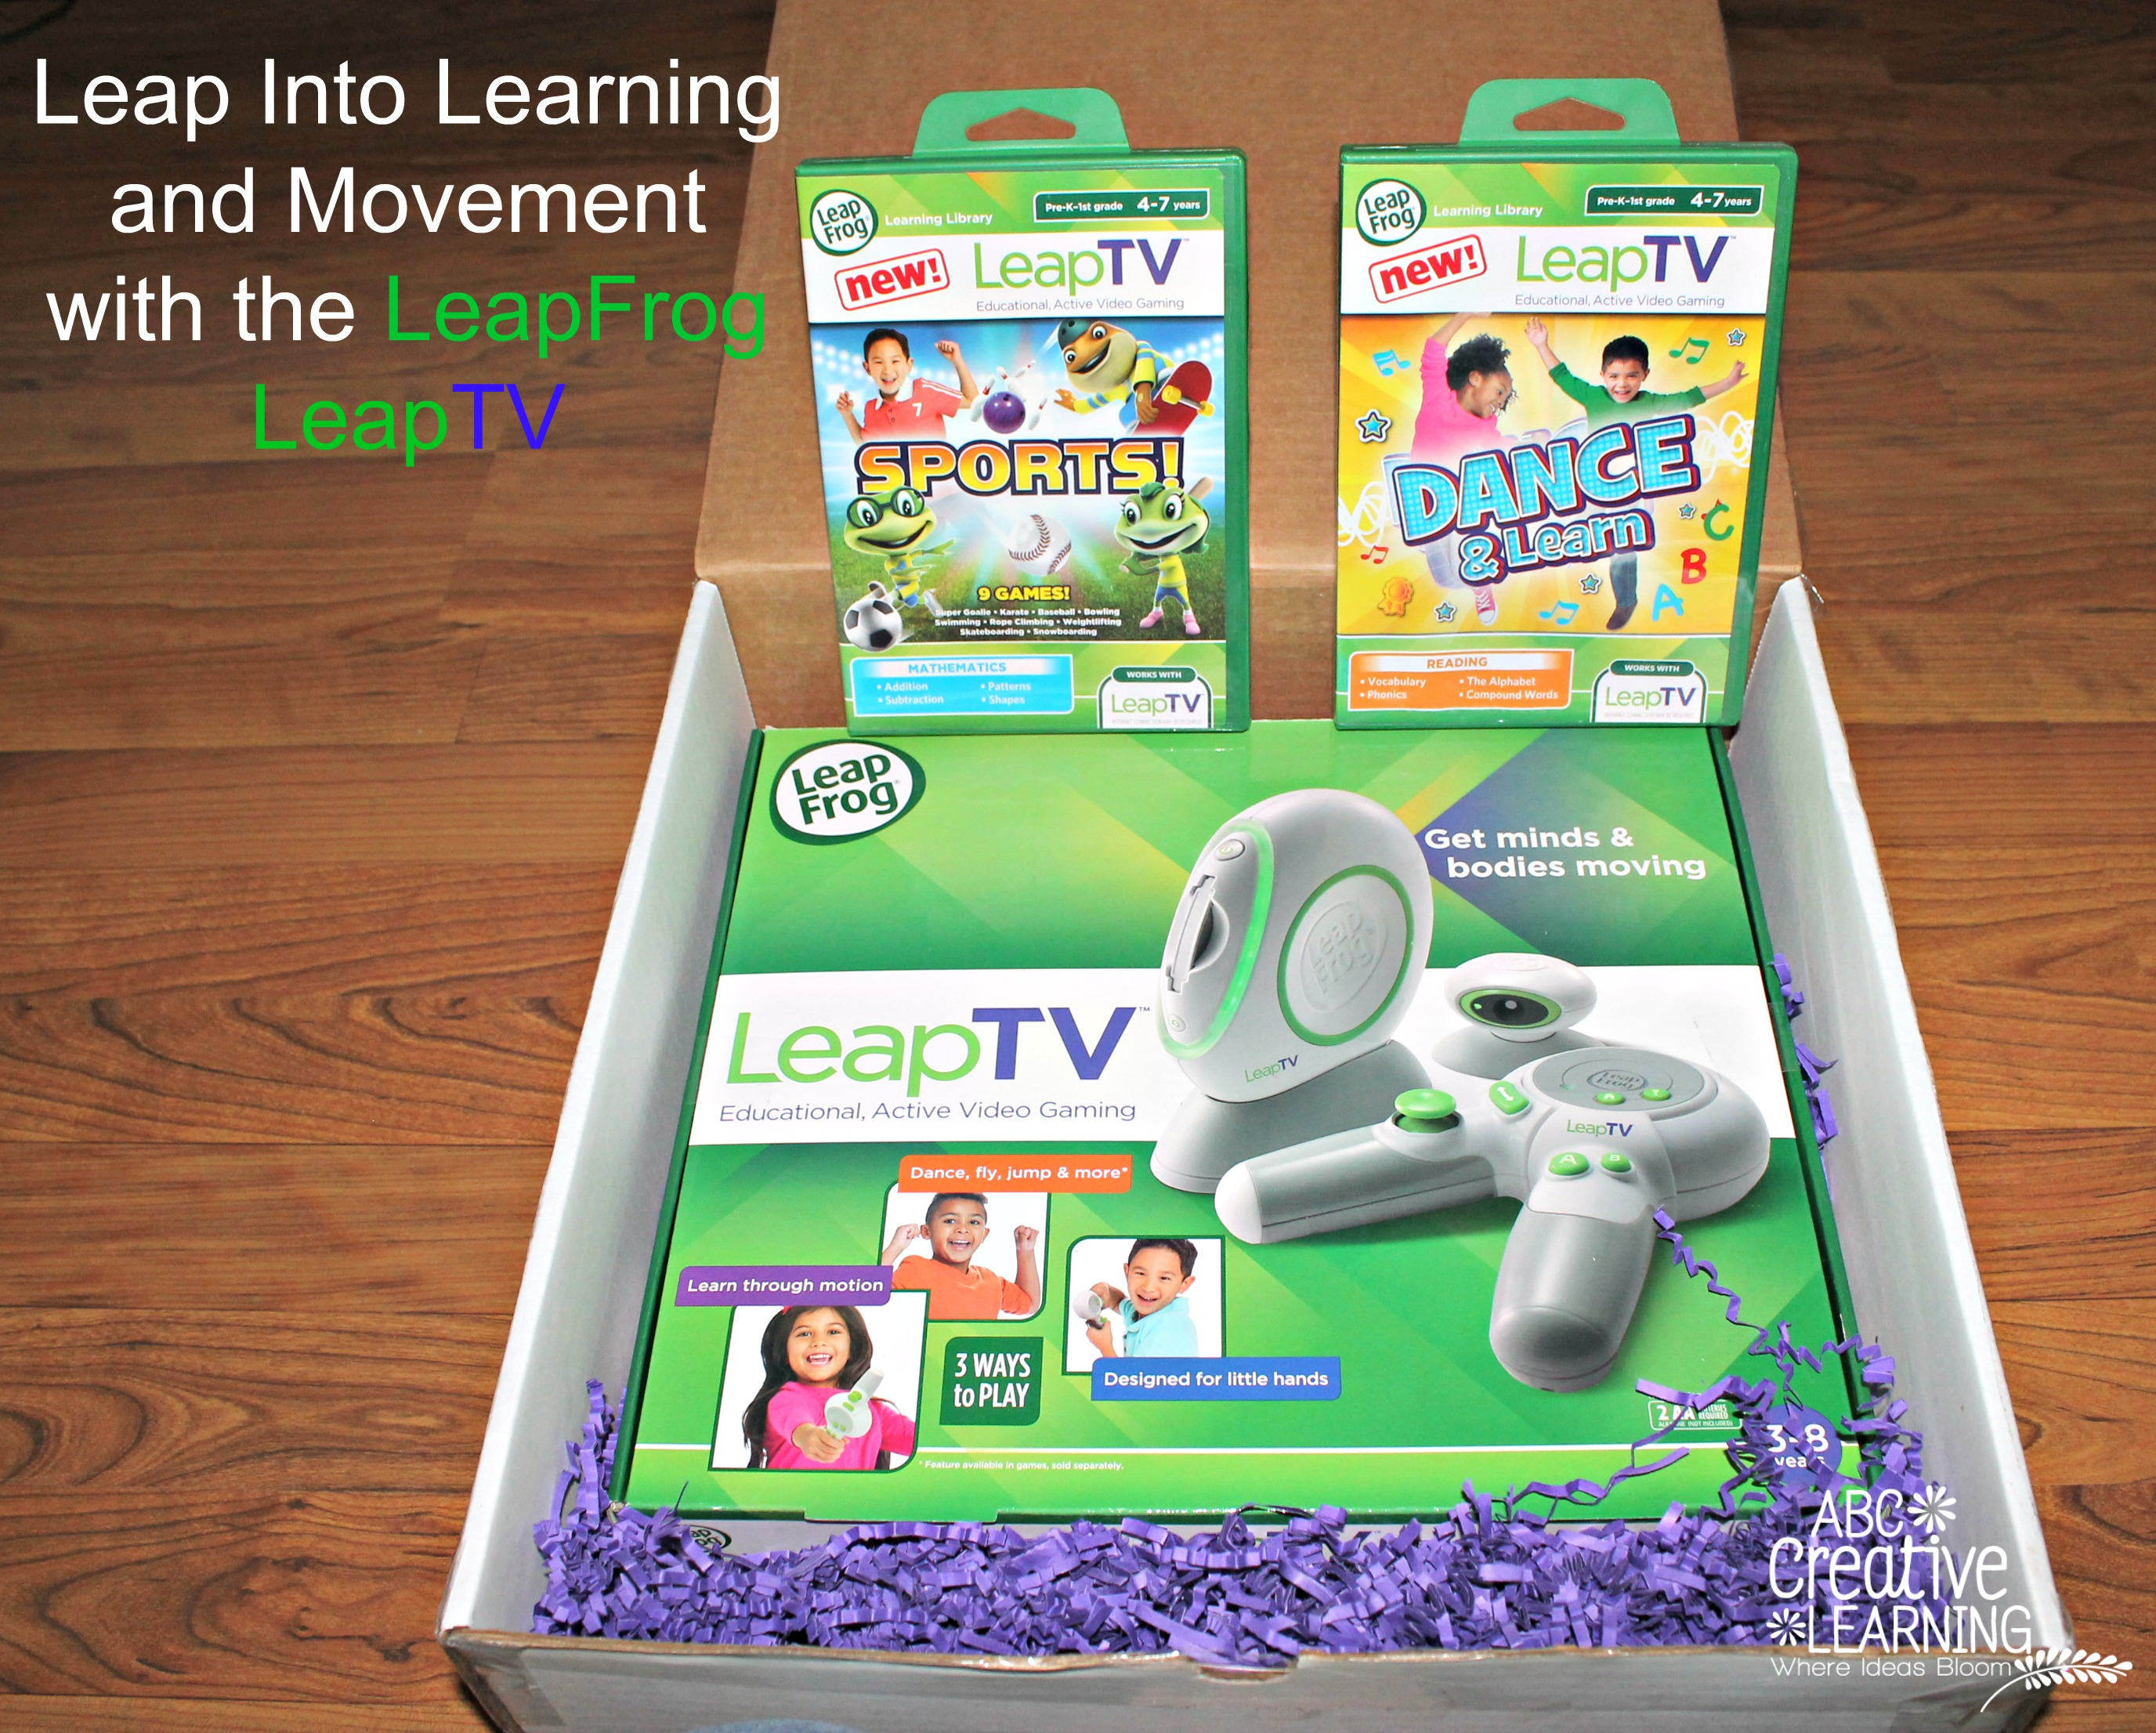 Leap Into Learning and Movement with the LeapFrog #LeapTV